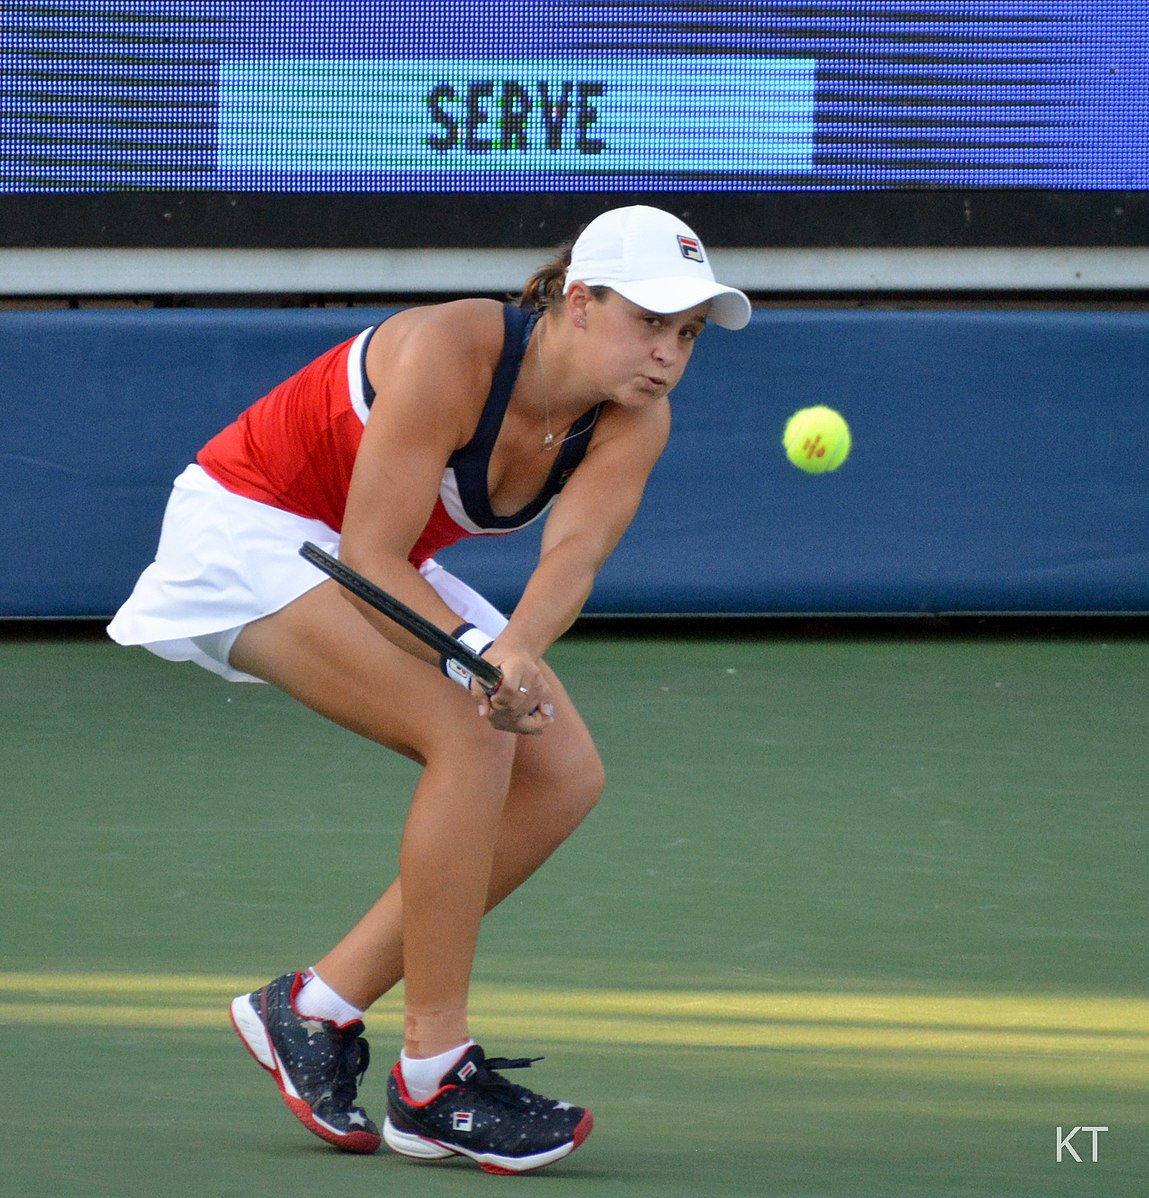 Ash Barty survives first round scare in US Open